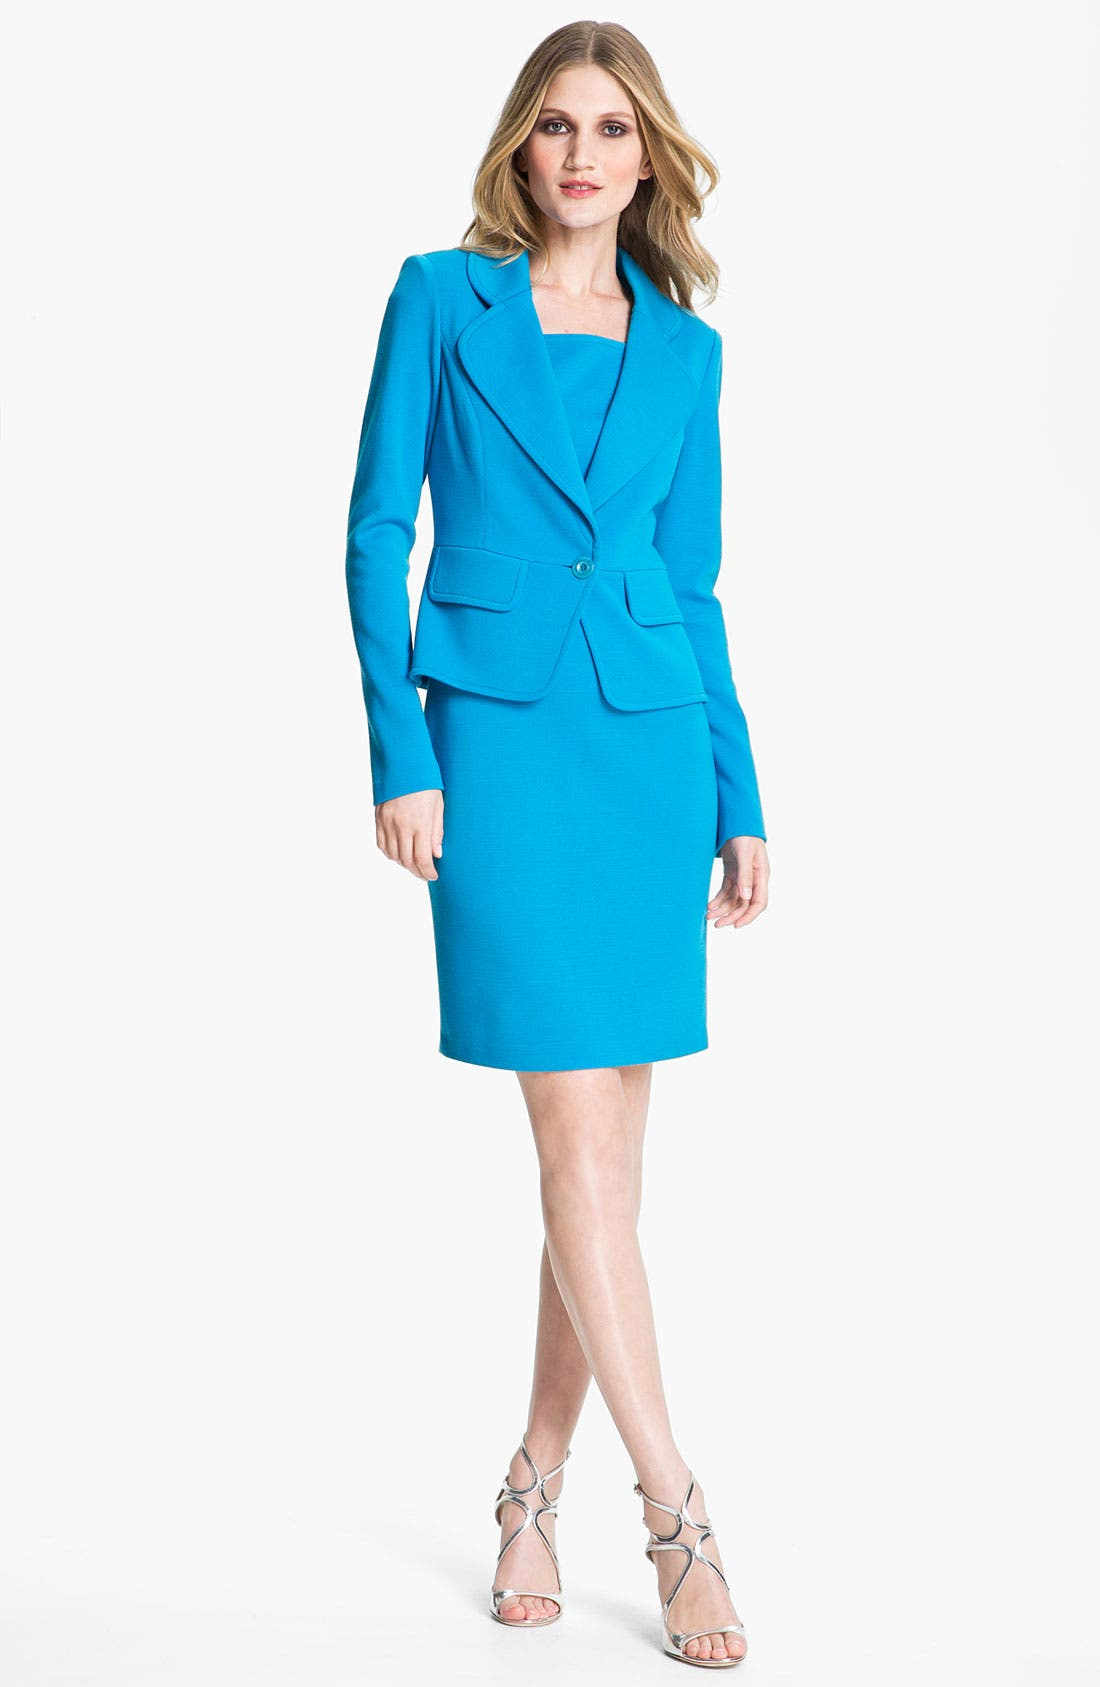 Alternate Image 1 Selected - St. John Collection Jacket & Sheath Dress